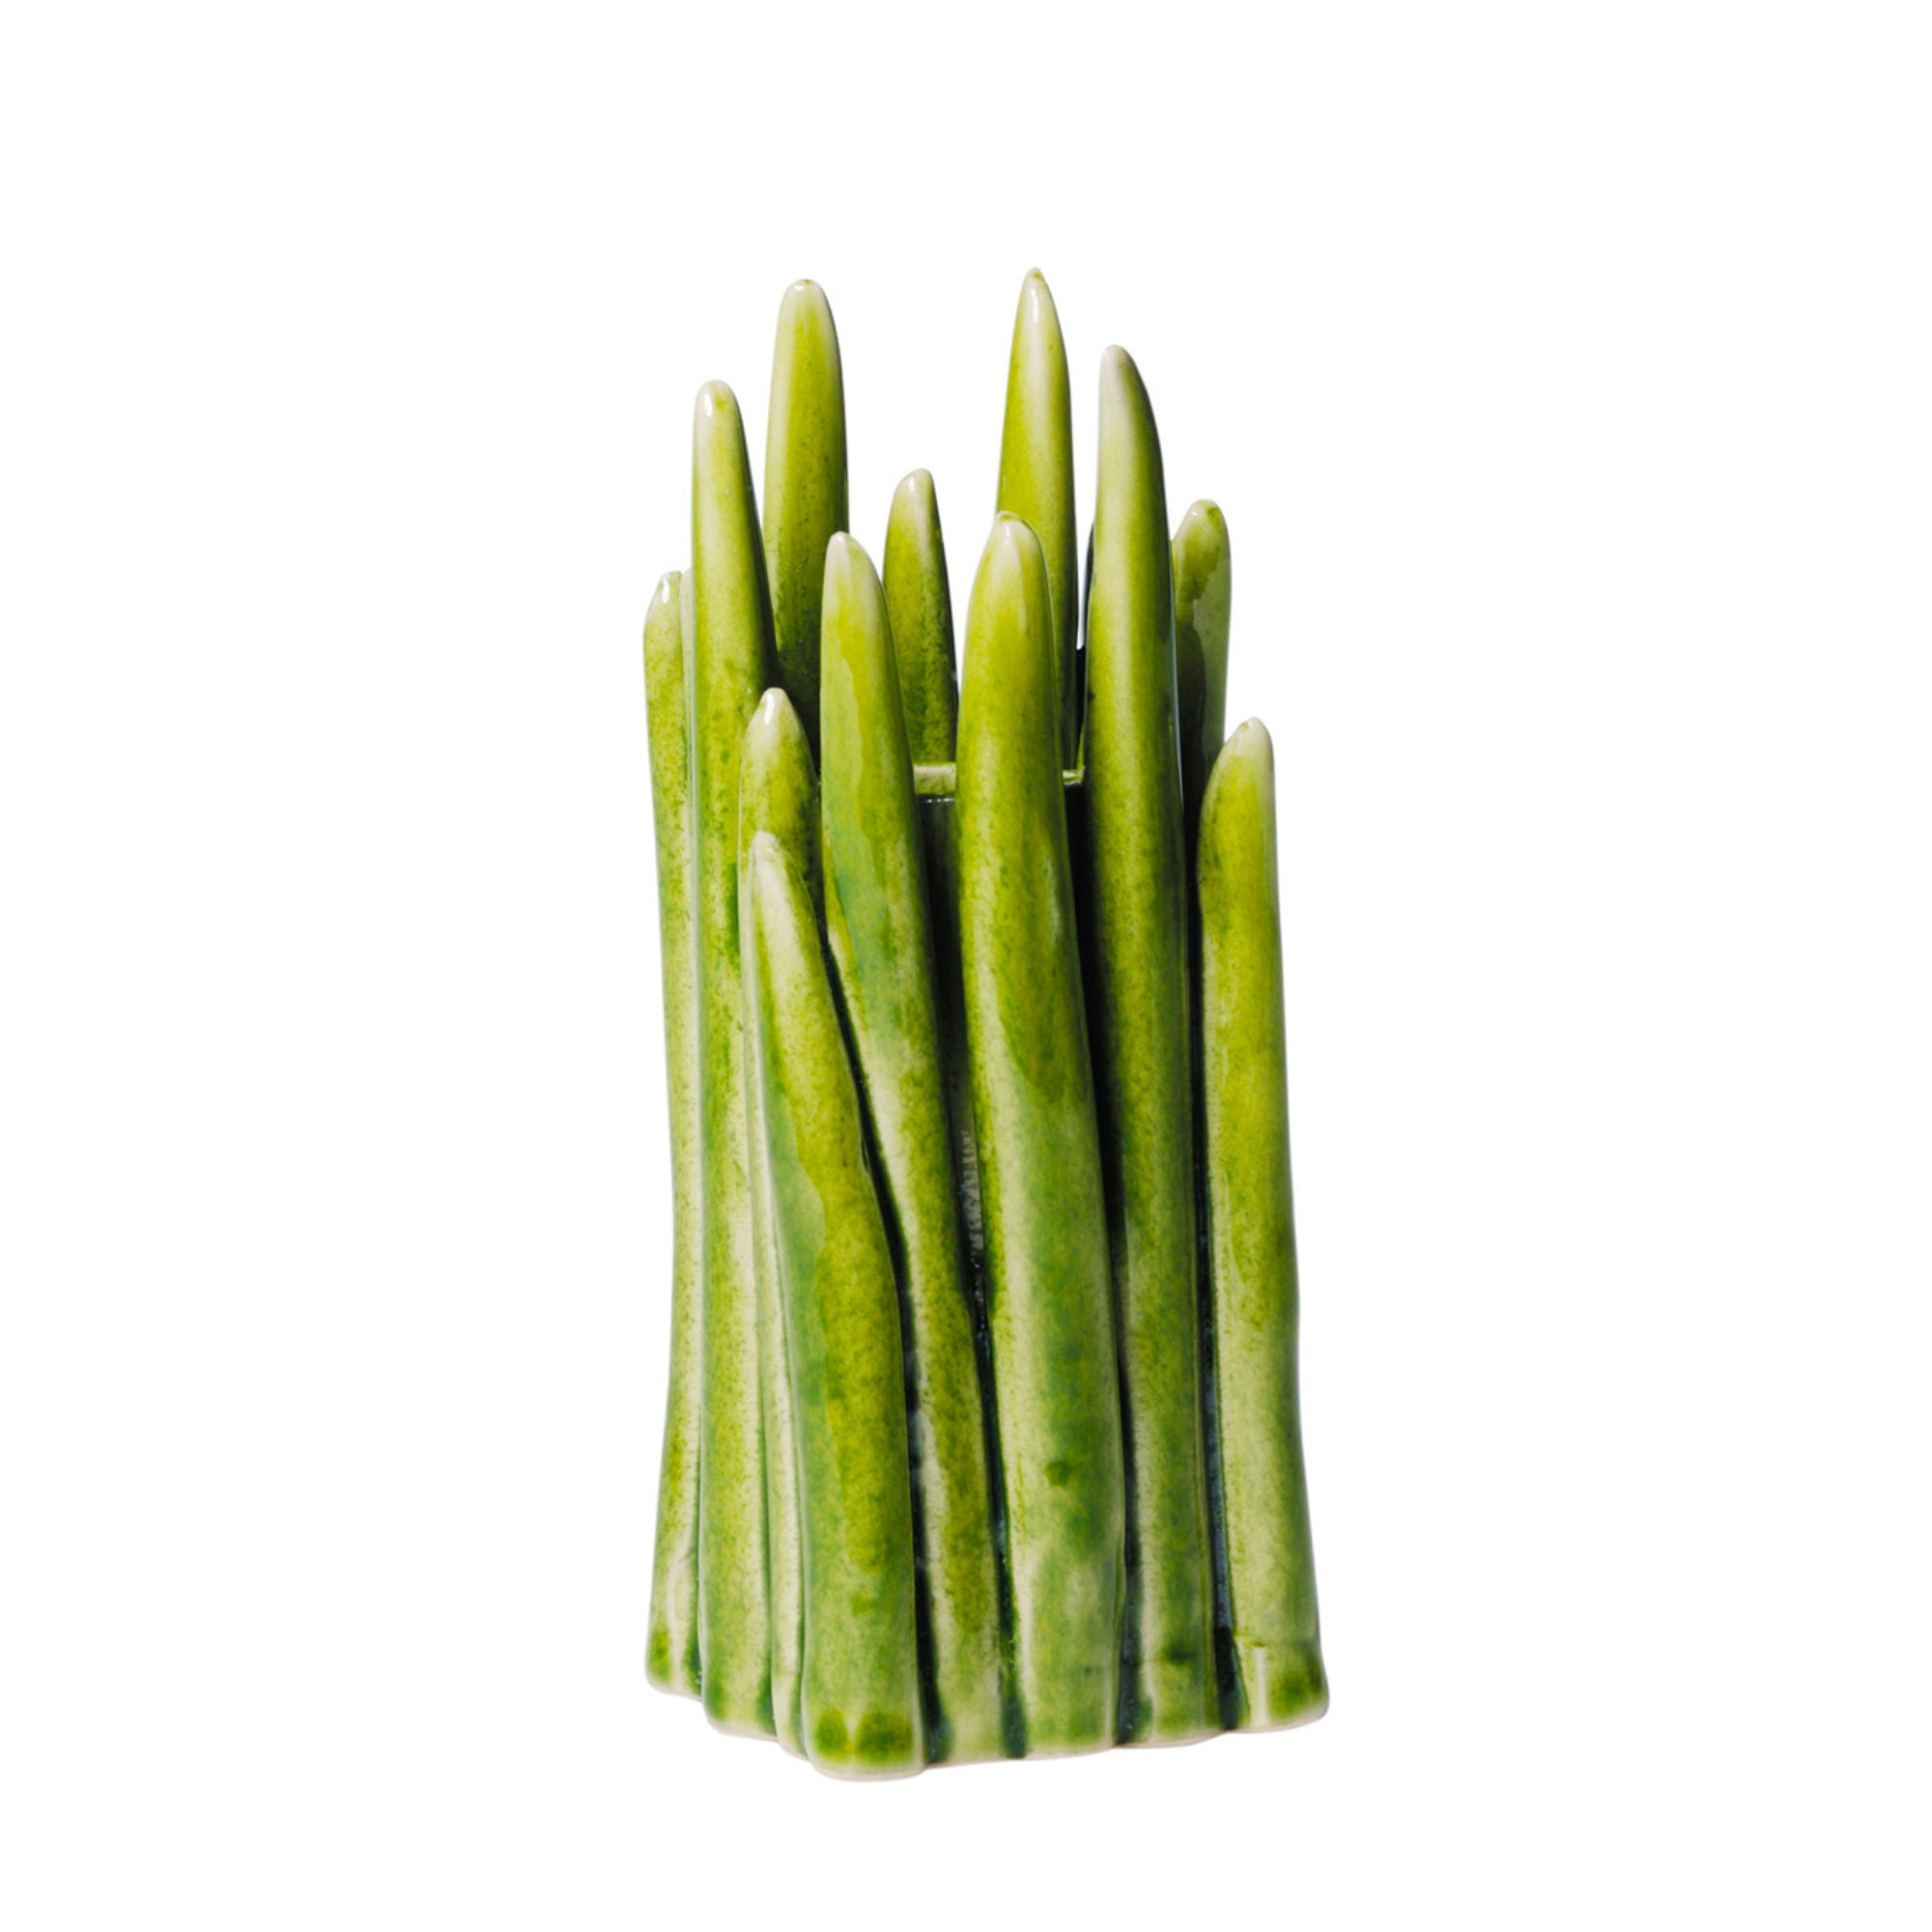 Normann Copenhagen Grass vase, small